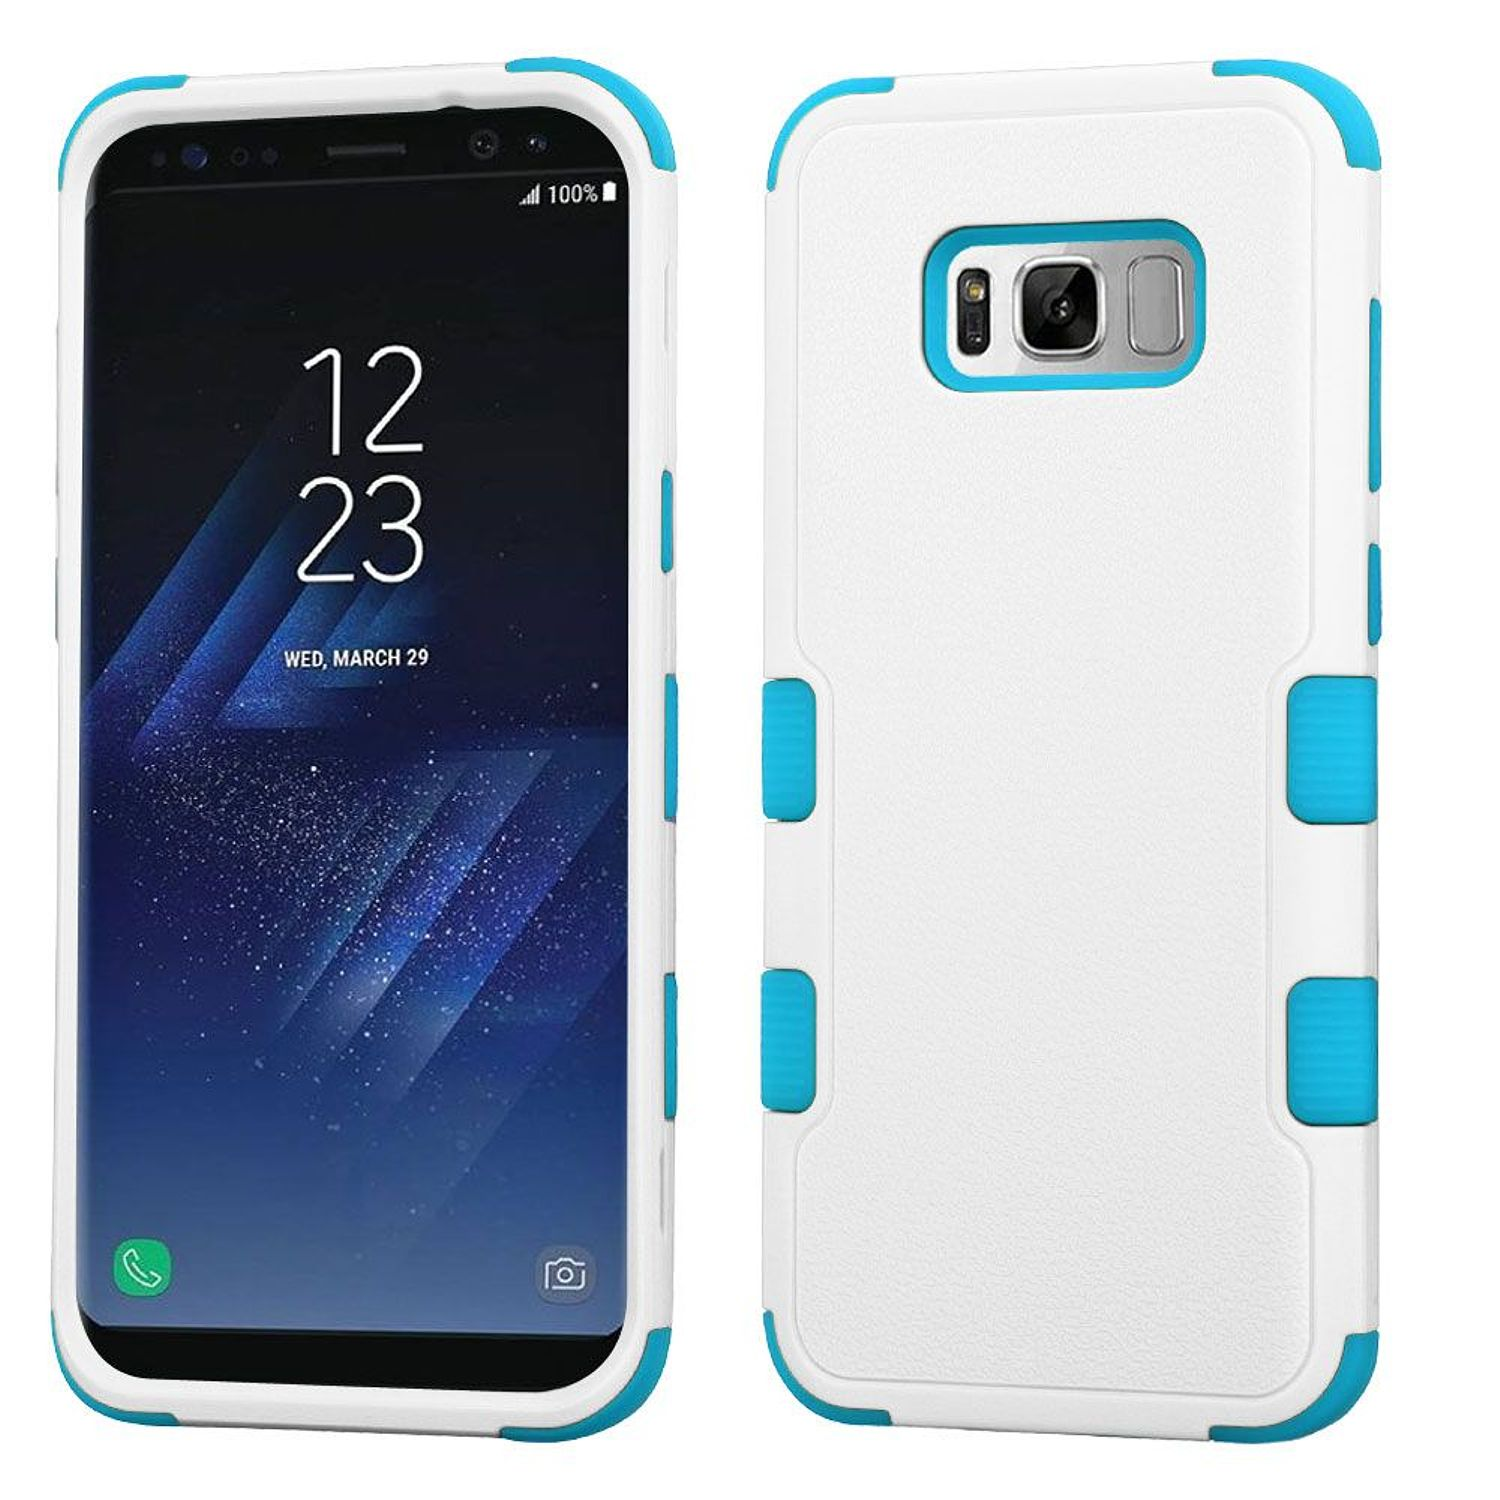 Insten Tuff Dual Layer [Shock Absorbing] Hybrid Rubberized Hard Plastic/Soft Silicone Case Phone Cover For Samsung Galaxy S8, White/Blue